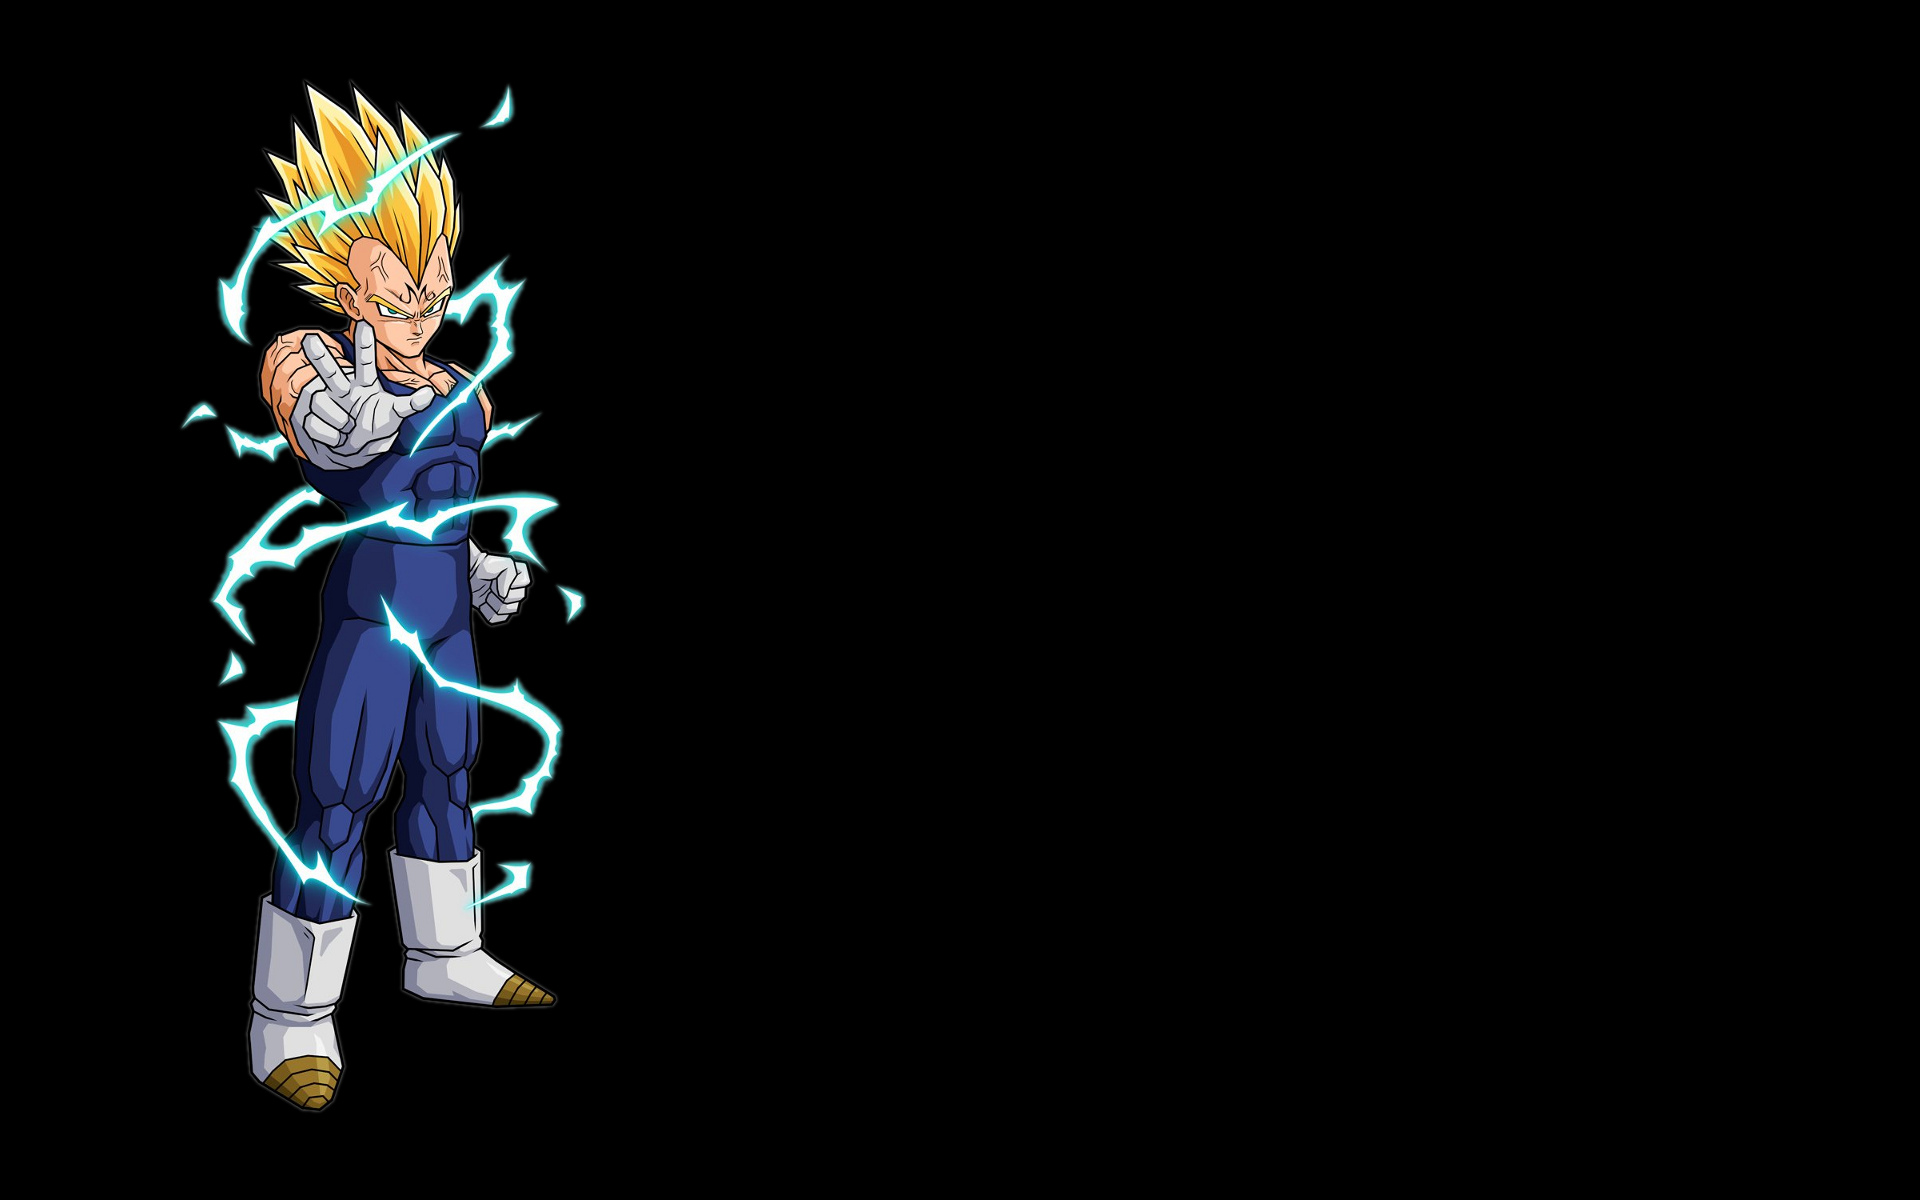 dbz wallpaper goku and vegeta wallpaper dbz vegeta ssj wallpaper